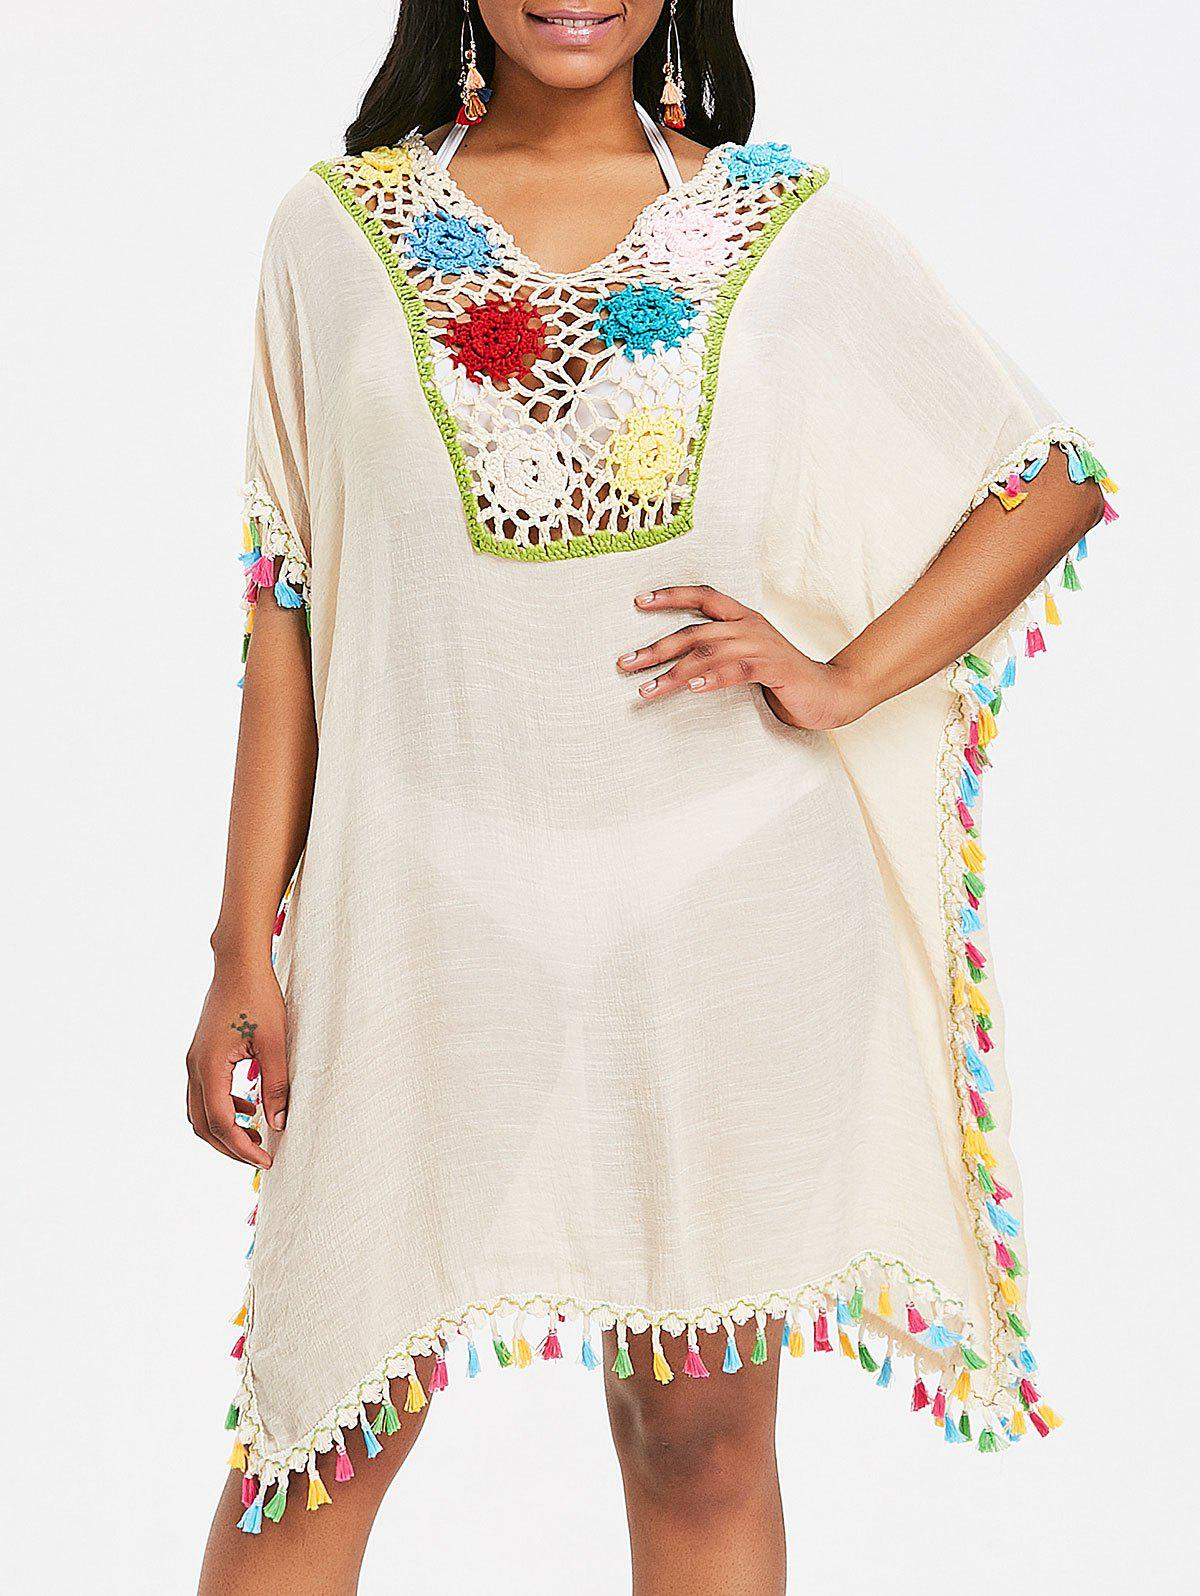 Crochet Insert Tassel Cover Up Dress tassel insert back fitted dress